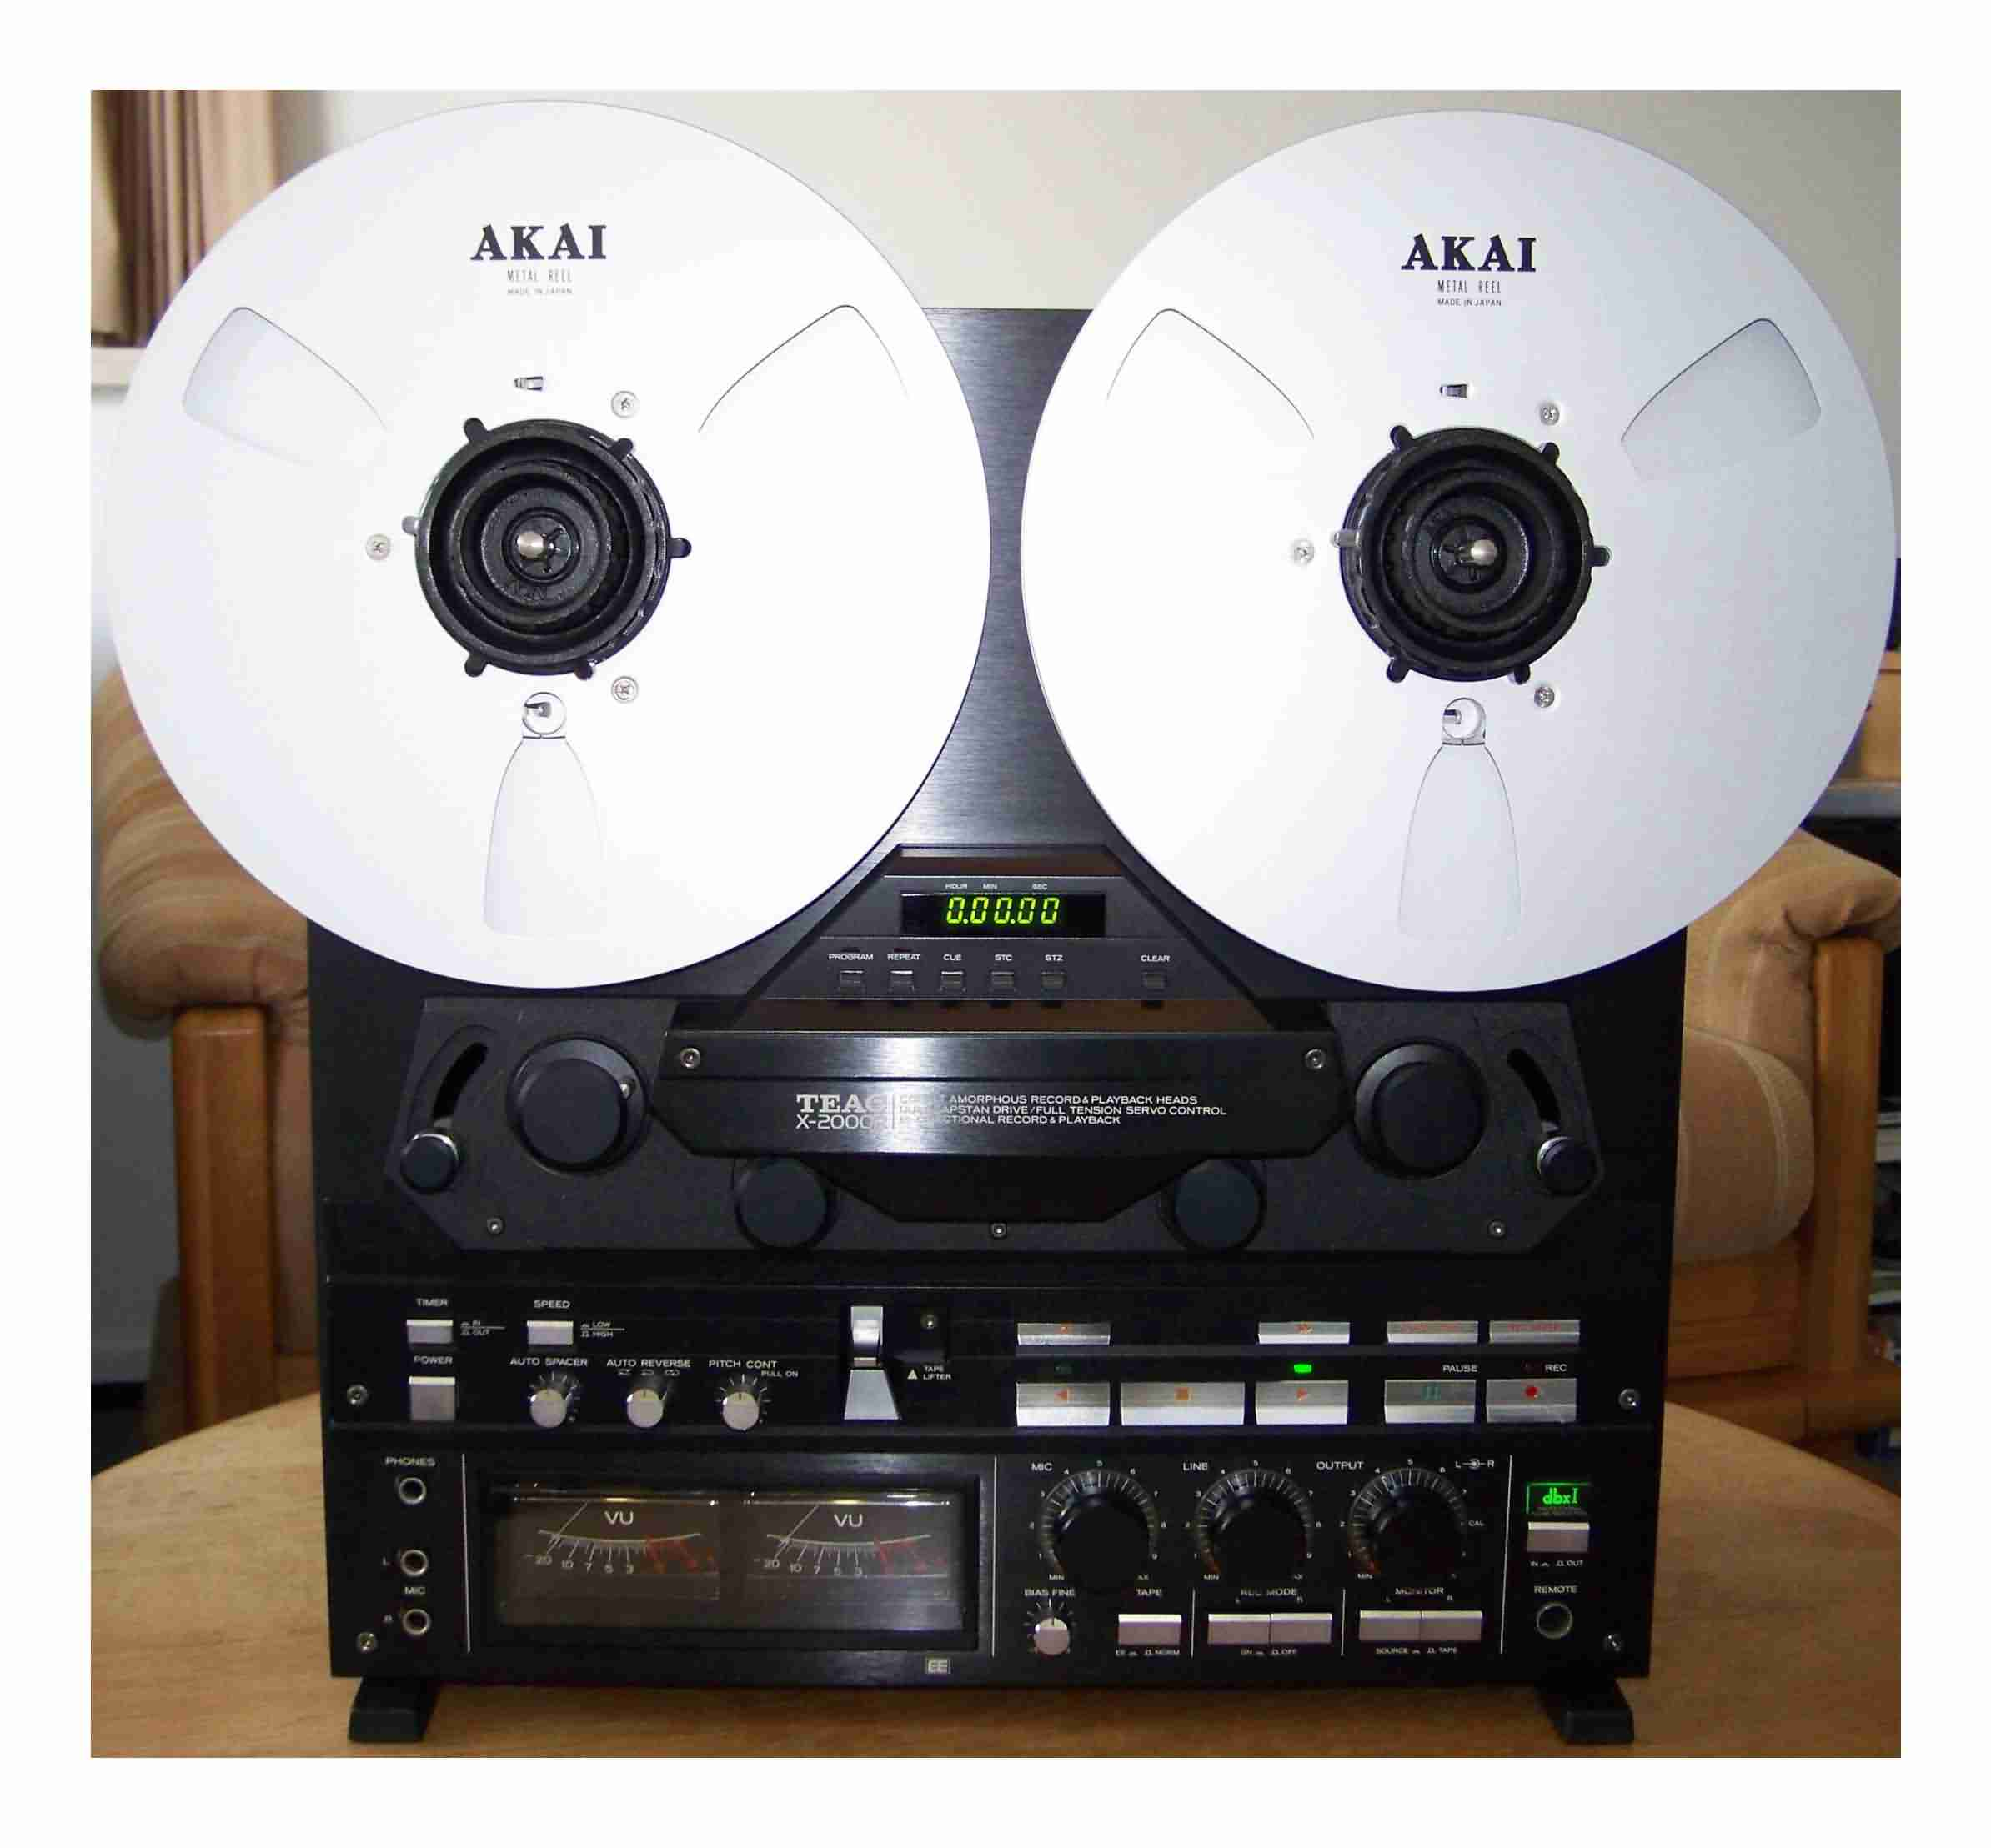 Mci cd audio